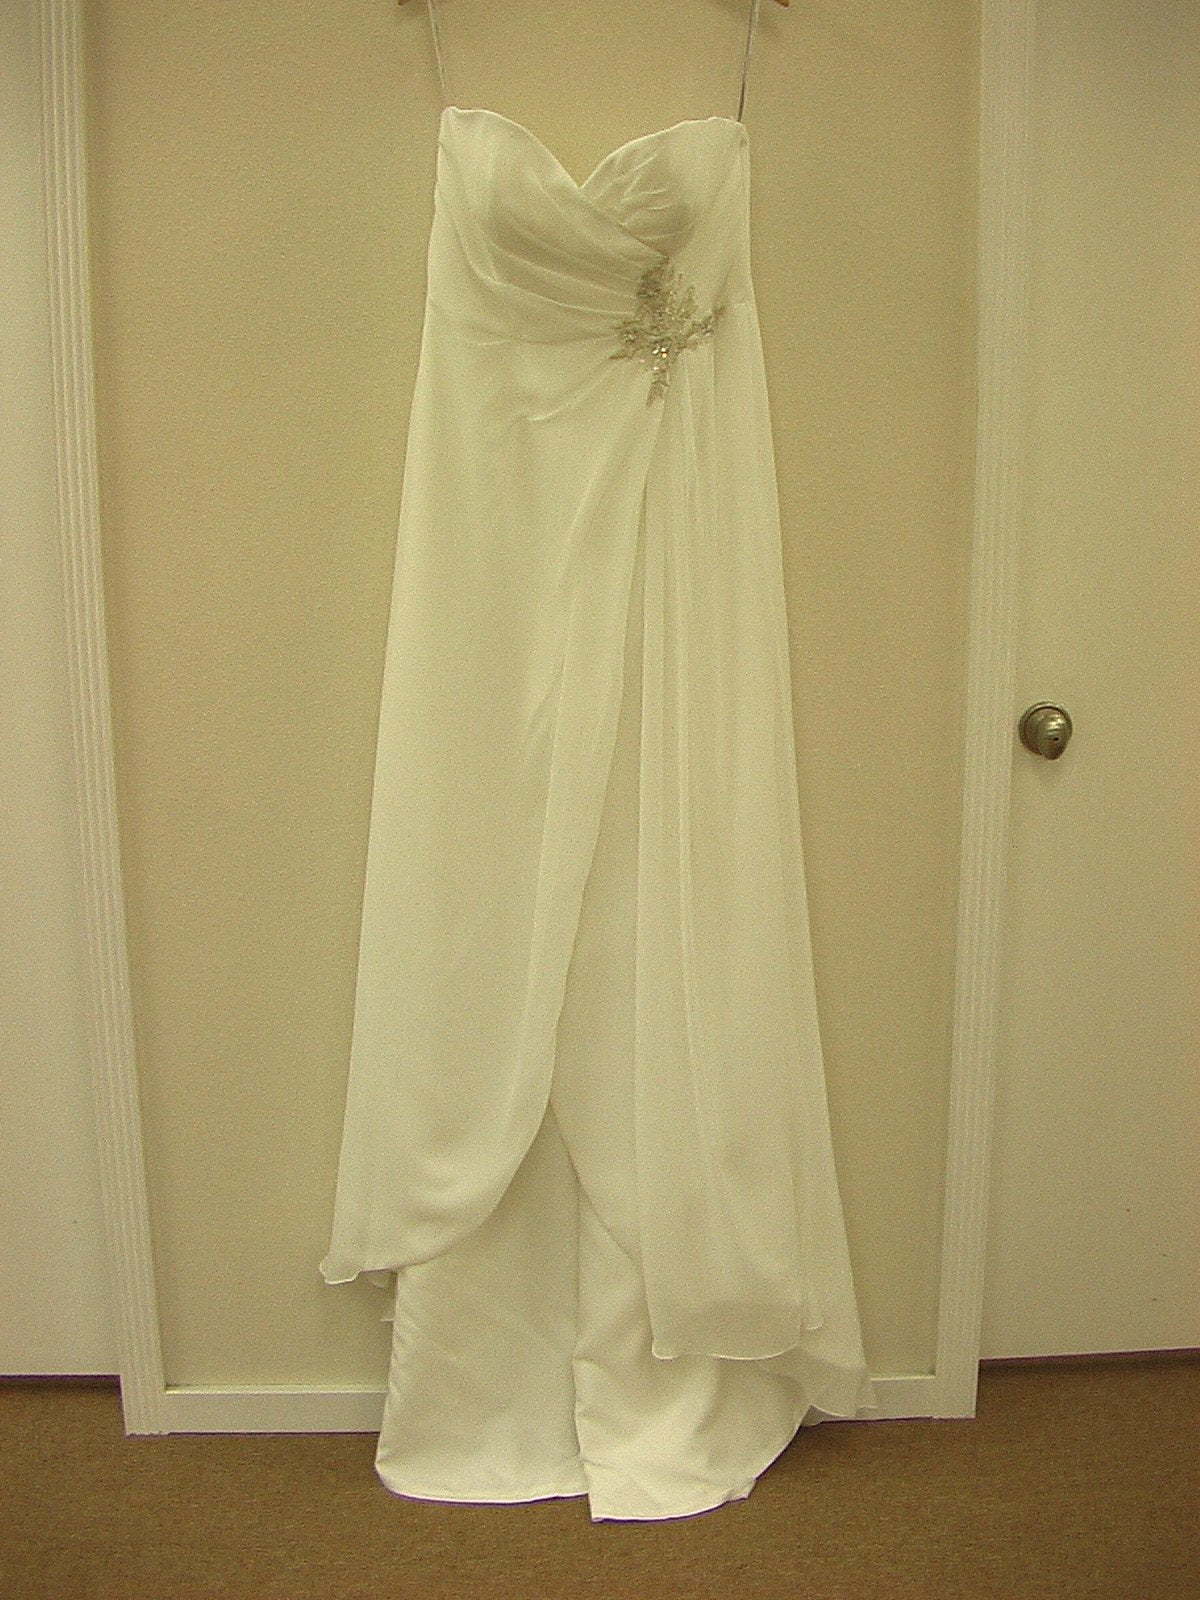 Moonlight T525 Ivory size 14 In Stock Wedding Dress - Tom's Bridal